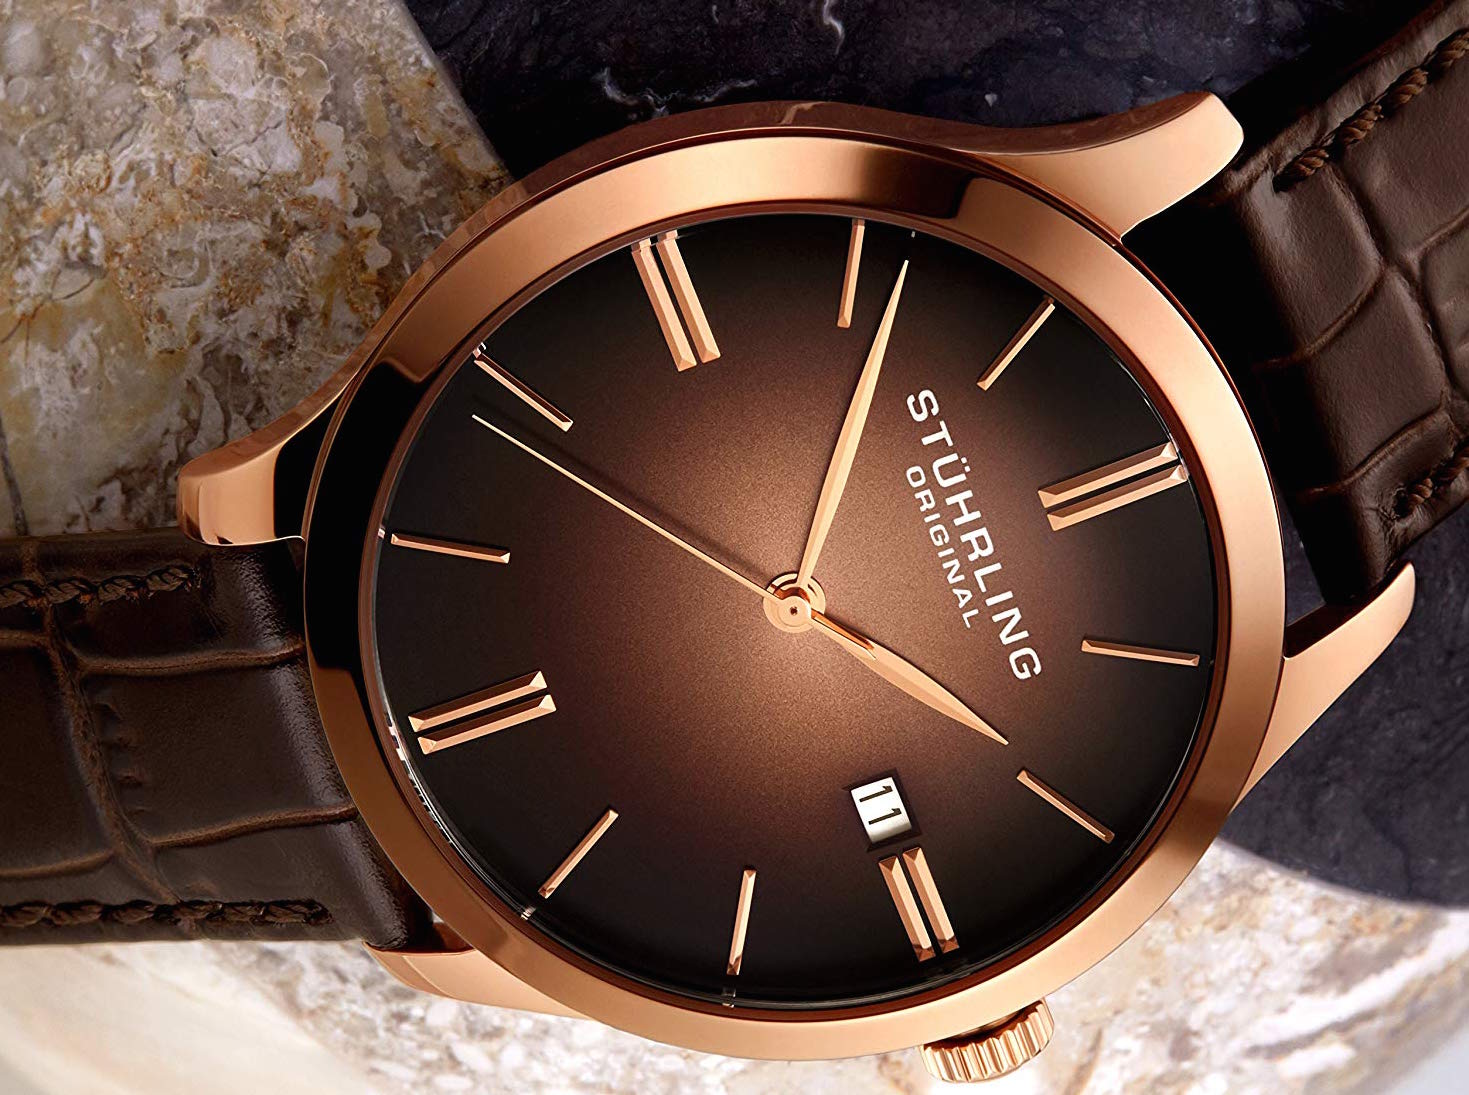 Stuhrling Original 490.3345K14 Cuvette II Watch Review